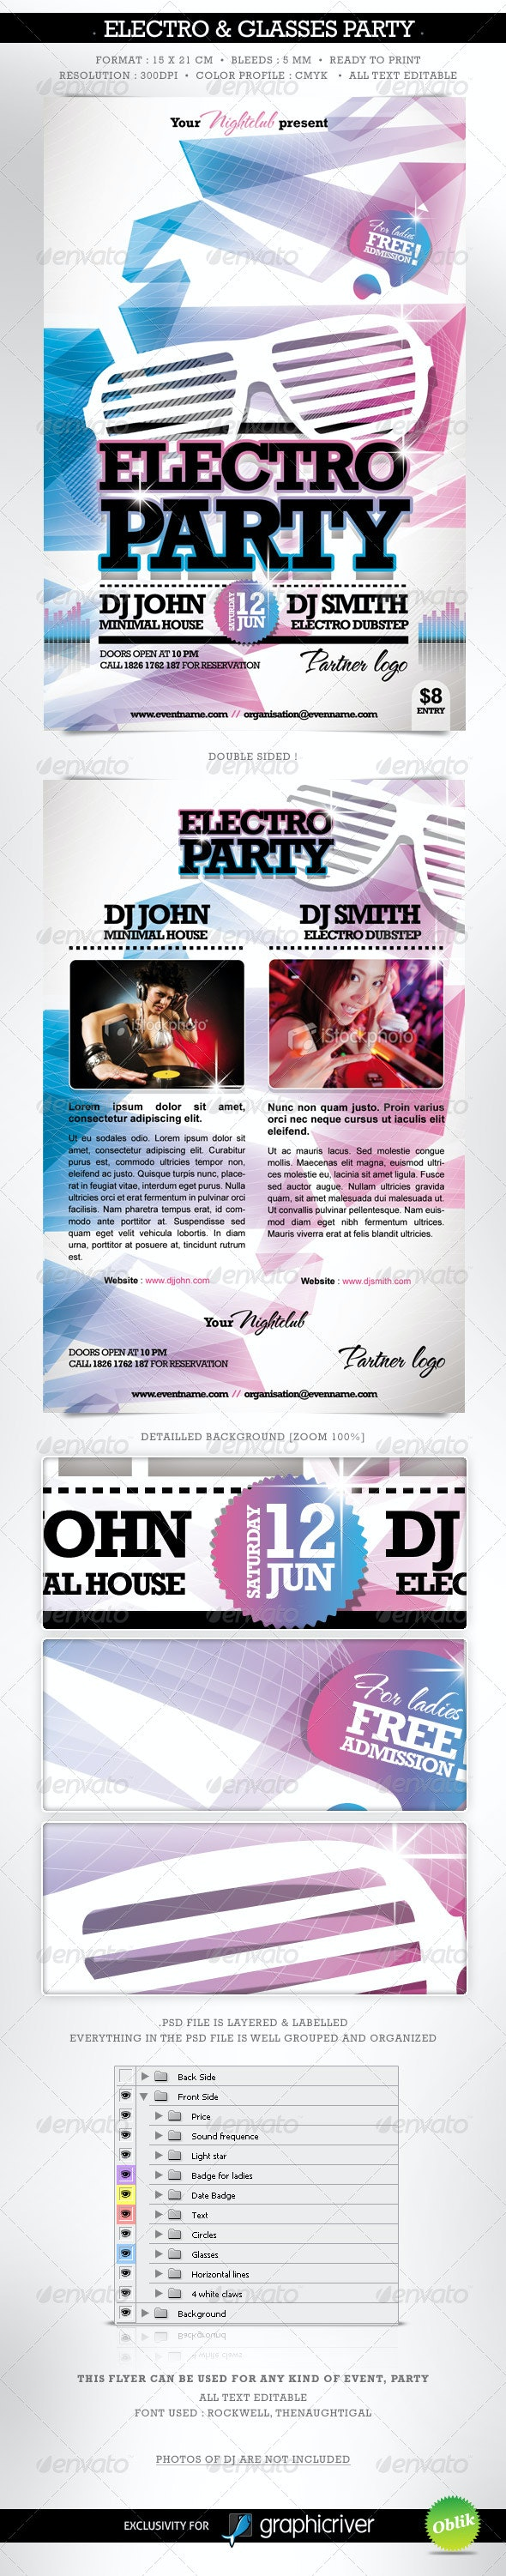 Electro & Fashion Glasses Flyer Double Sided - Clubs & Parties Events